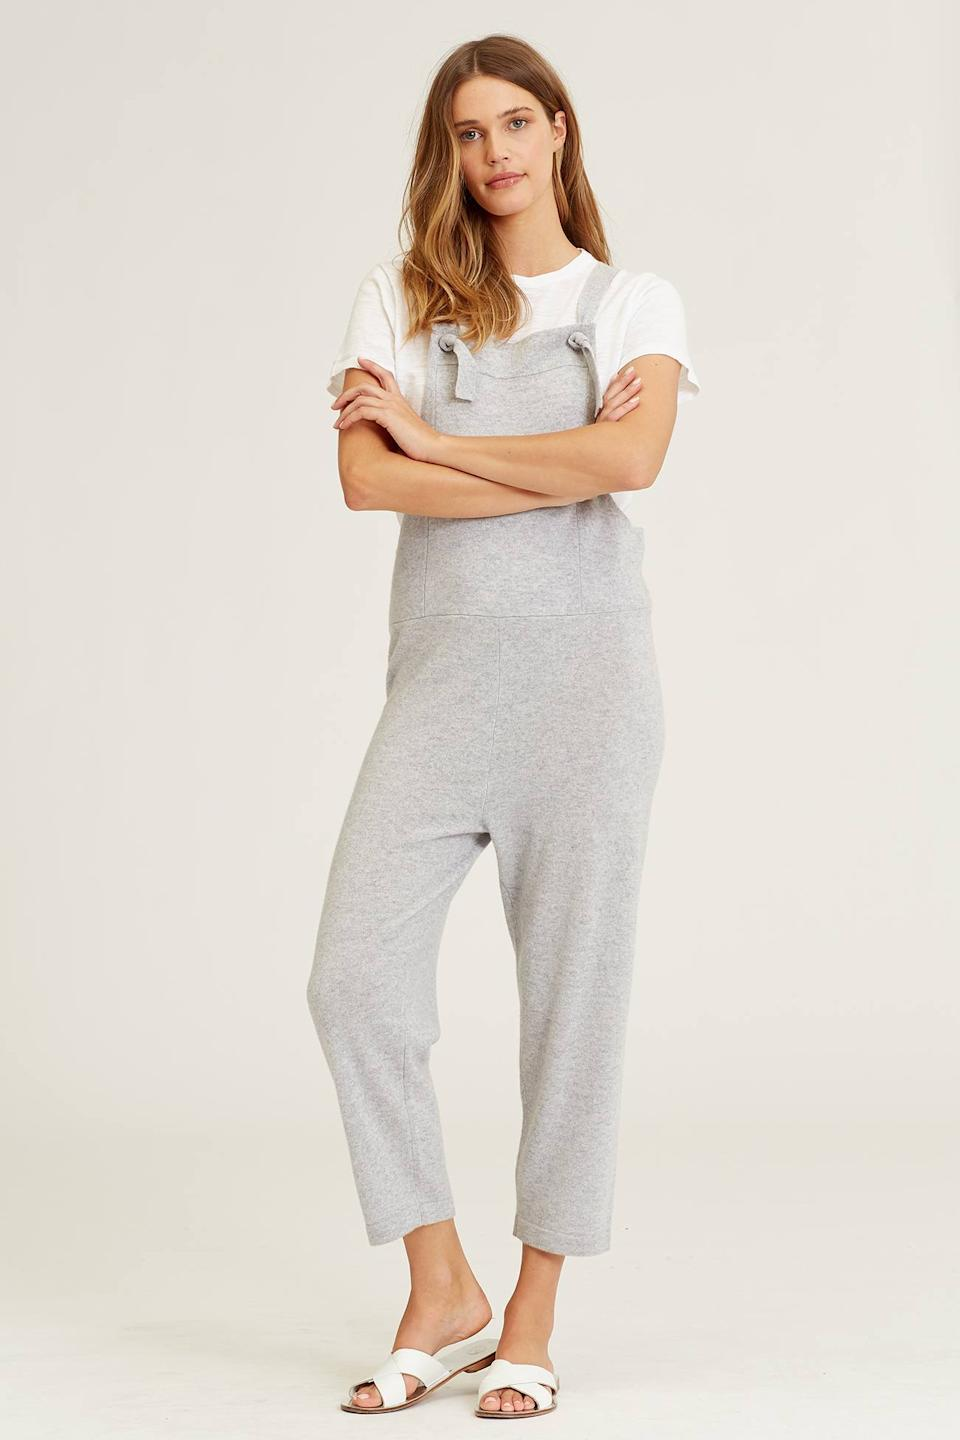 """<br><br><strong>Naked Cashmere</strong> The Cashmere Overall, $, available at <a href=""""https://go.skimresources.com/?id=30283X879131&url=https%3A%2F%2Fwww.nakedcashmere.com%2Fproducts%2Fthe-overall"""" rel=""""nofollow noopener"""" target=""""_blank"""" data-ylk=""""slk:Naked Cashmere"""" class=""""link rapid-noclick-resp"""">Naked Cashmere</a>"""